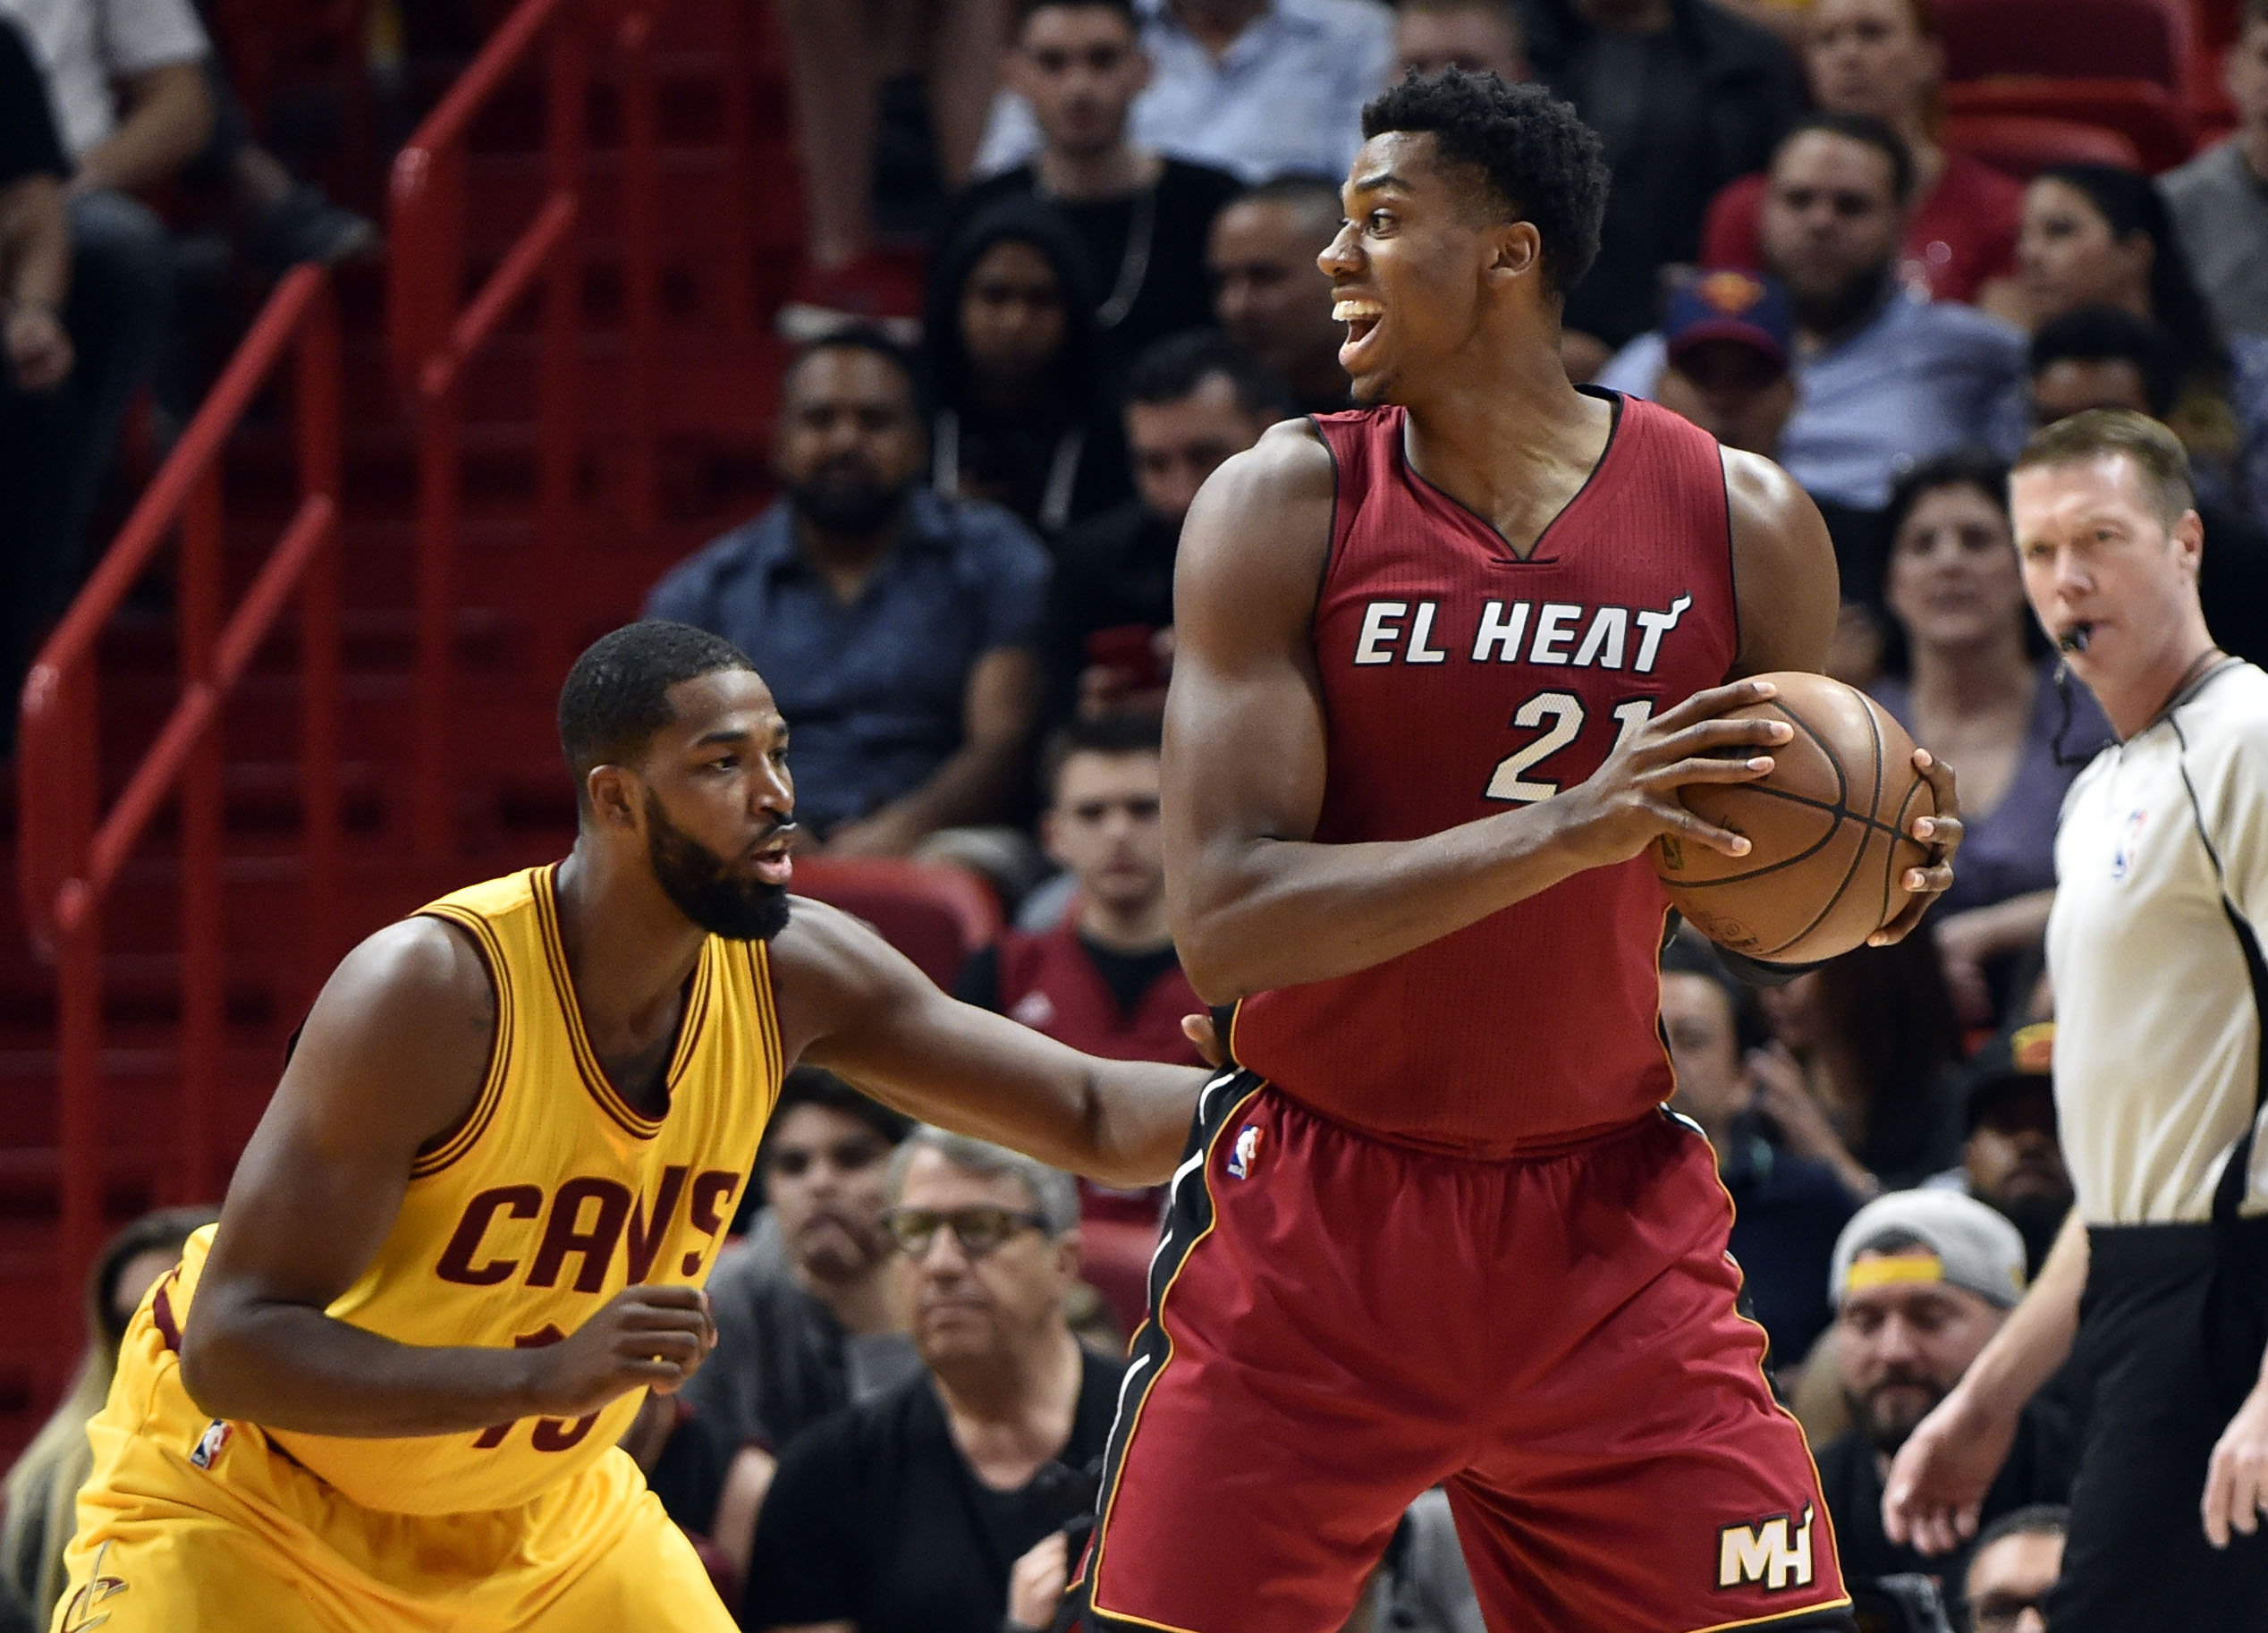 Miami heat updated news - Miami Heat News Now